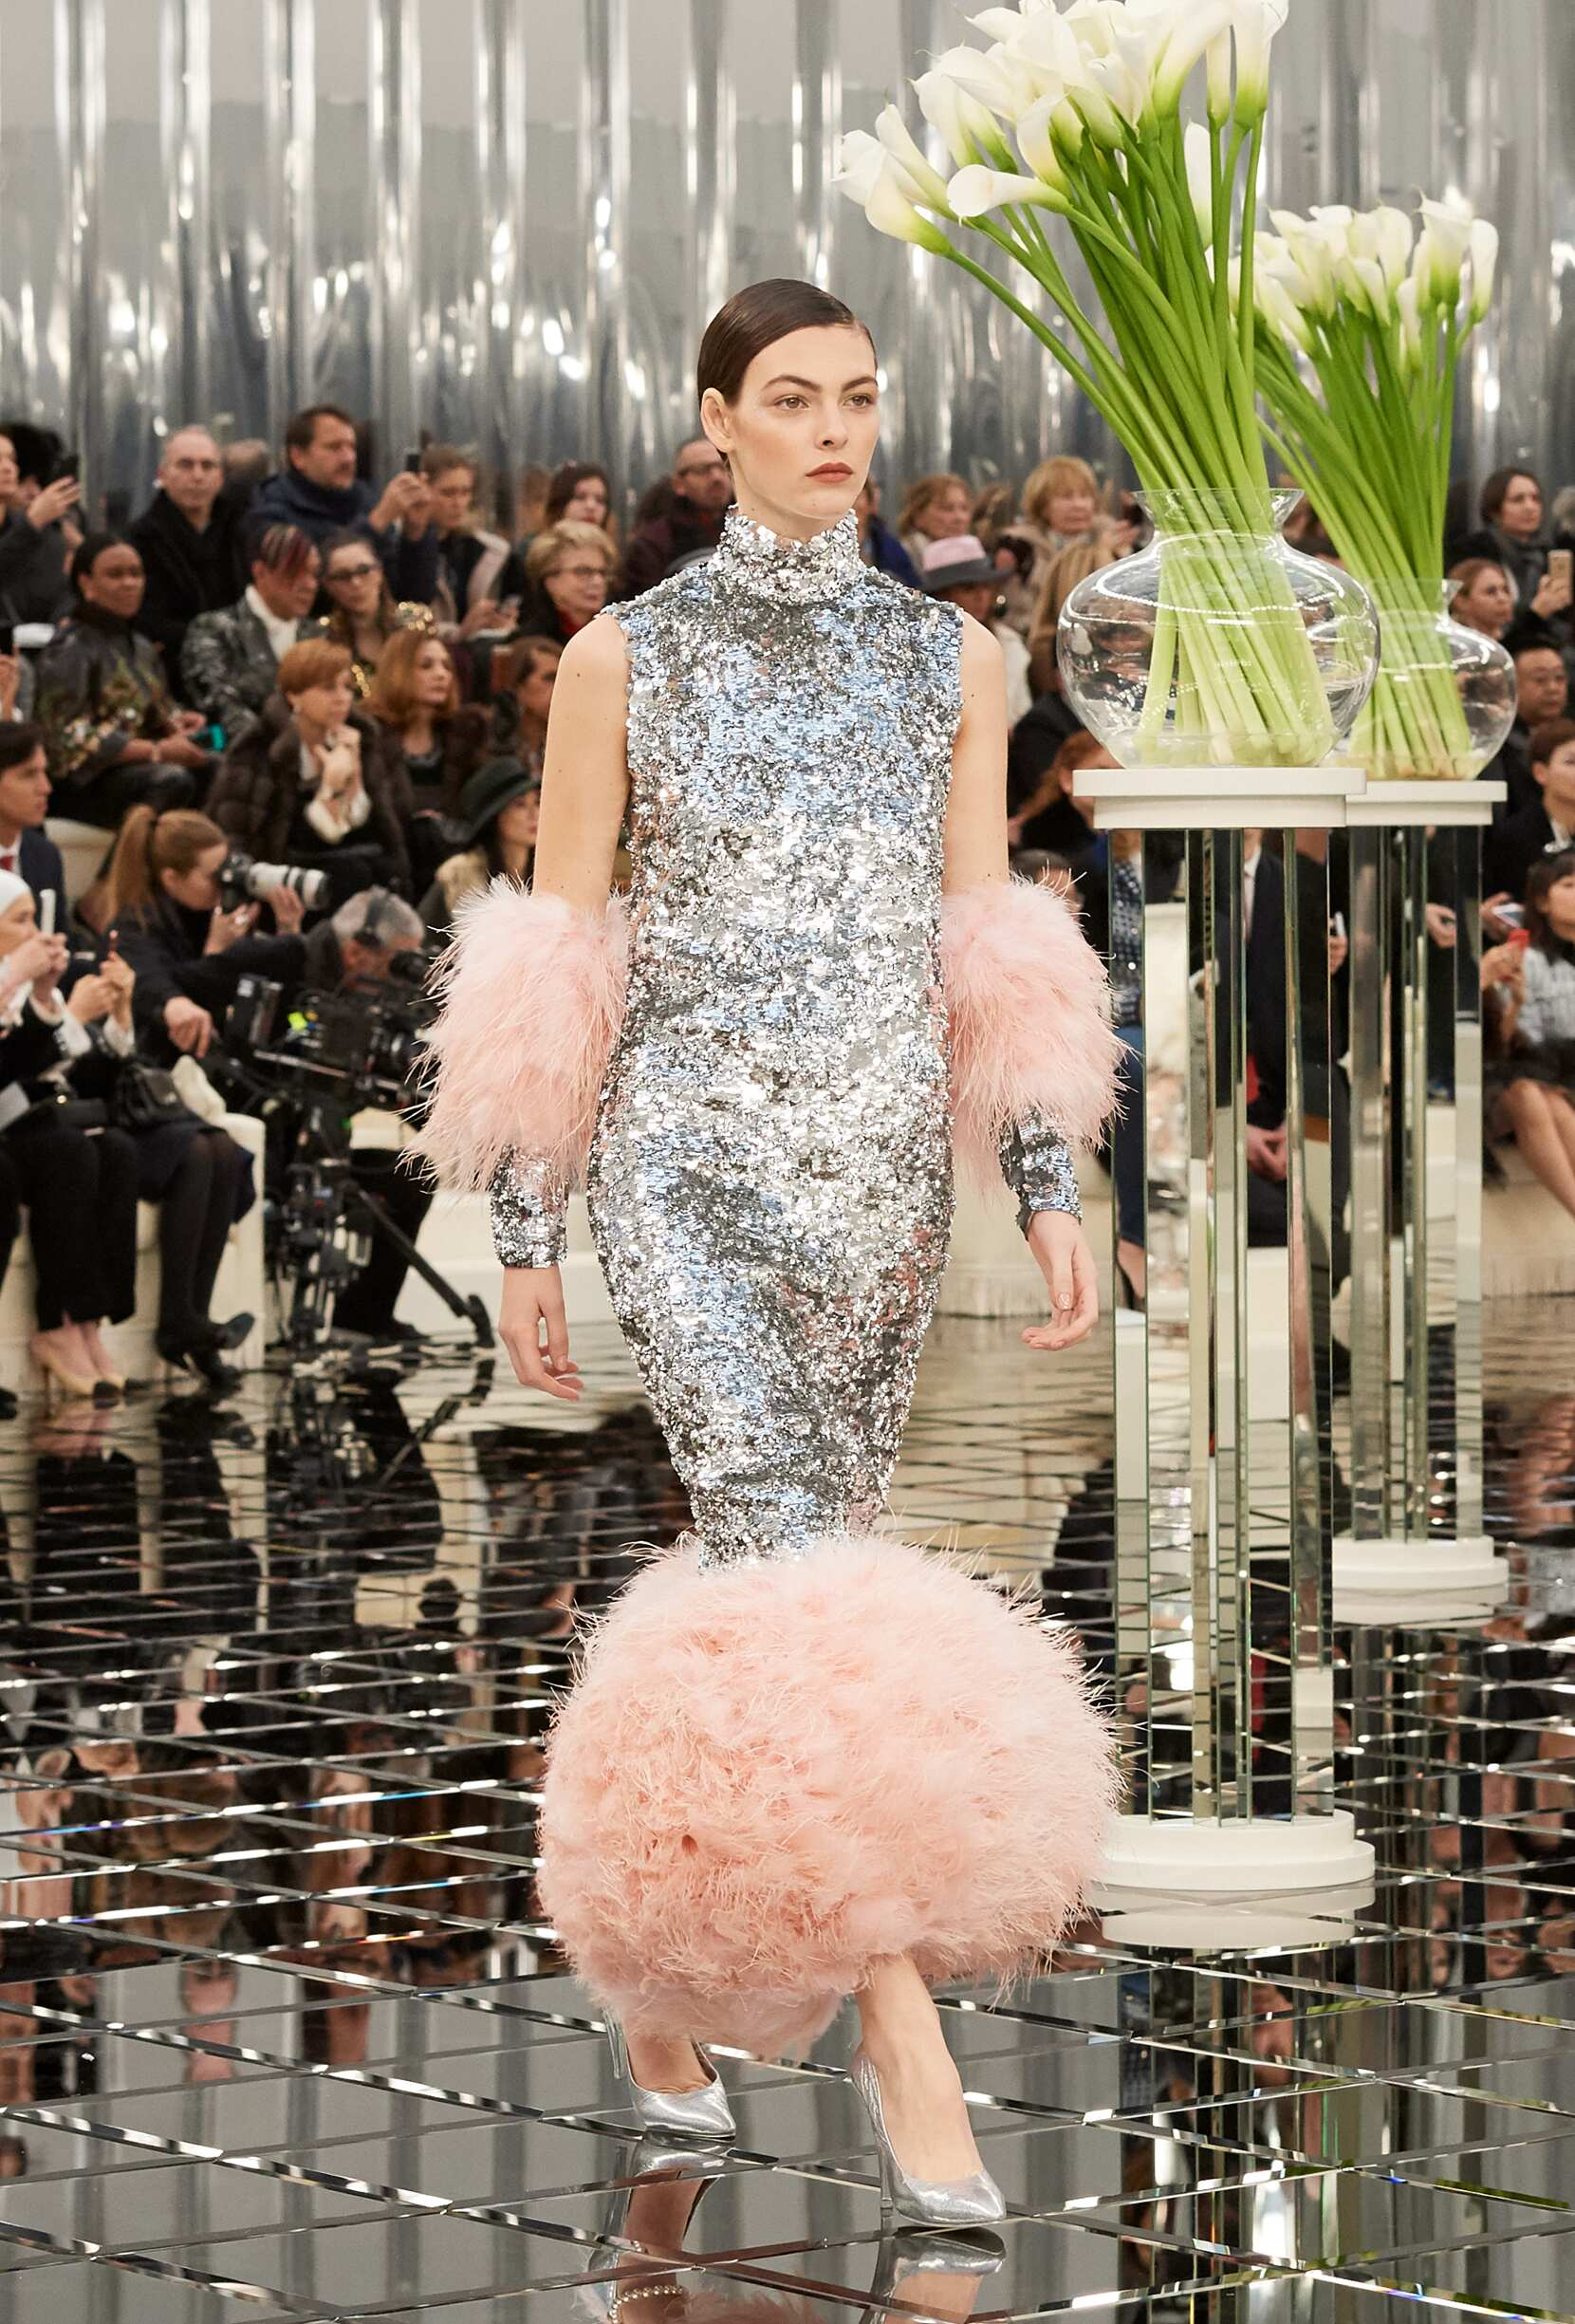 CHANEL SPRING SUMMER 2017 HAUTE COUTURE COLLECTION   The Skinny Beep 74dc0dddf2f